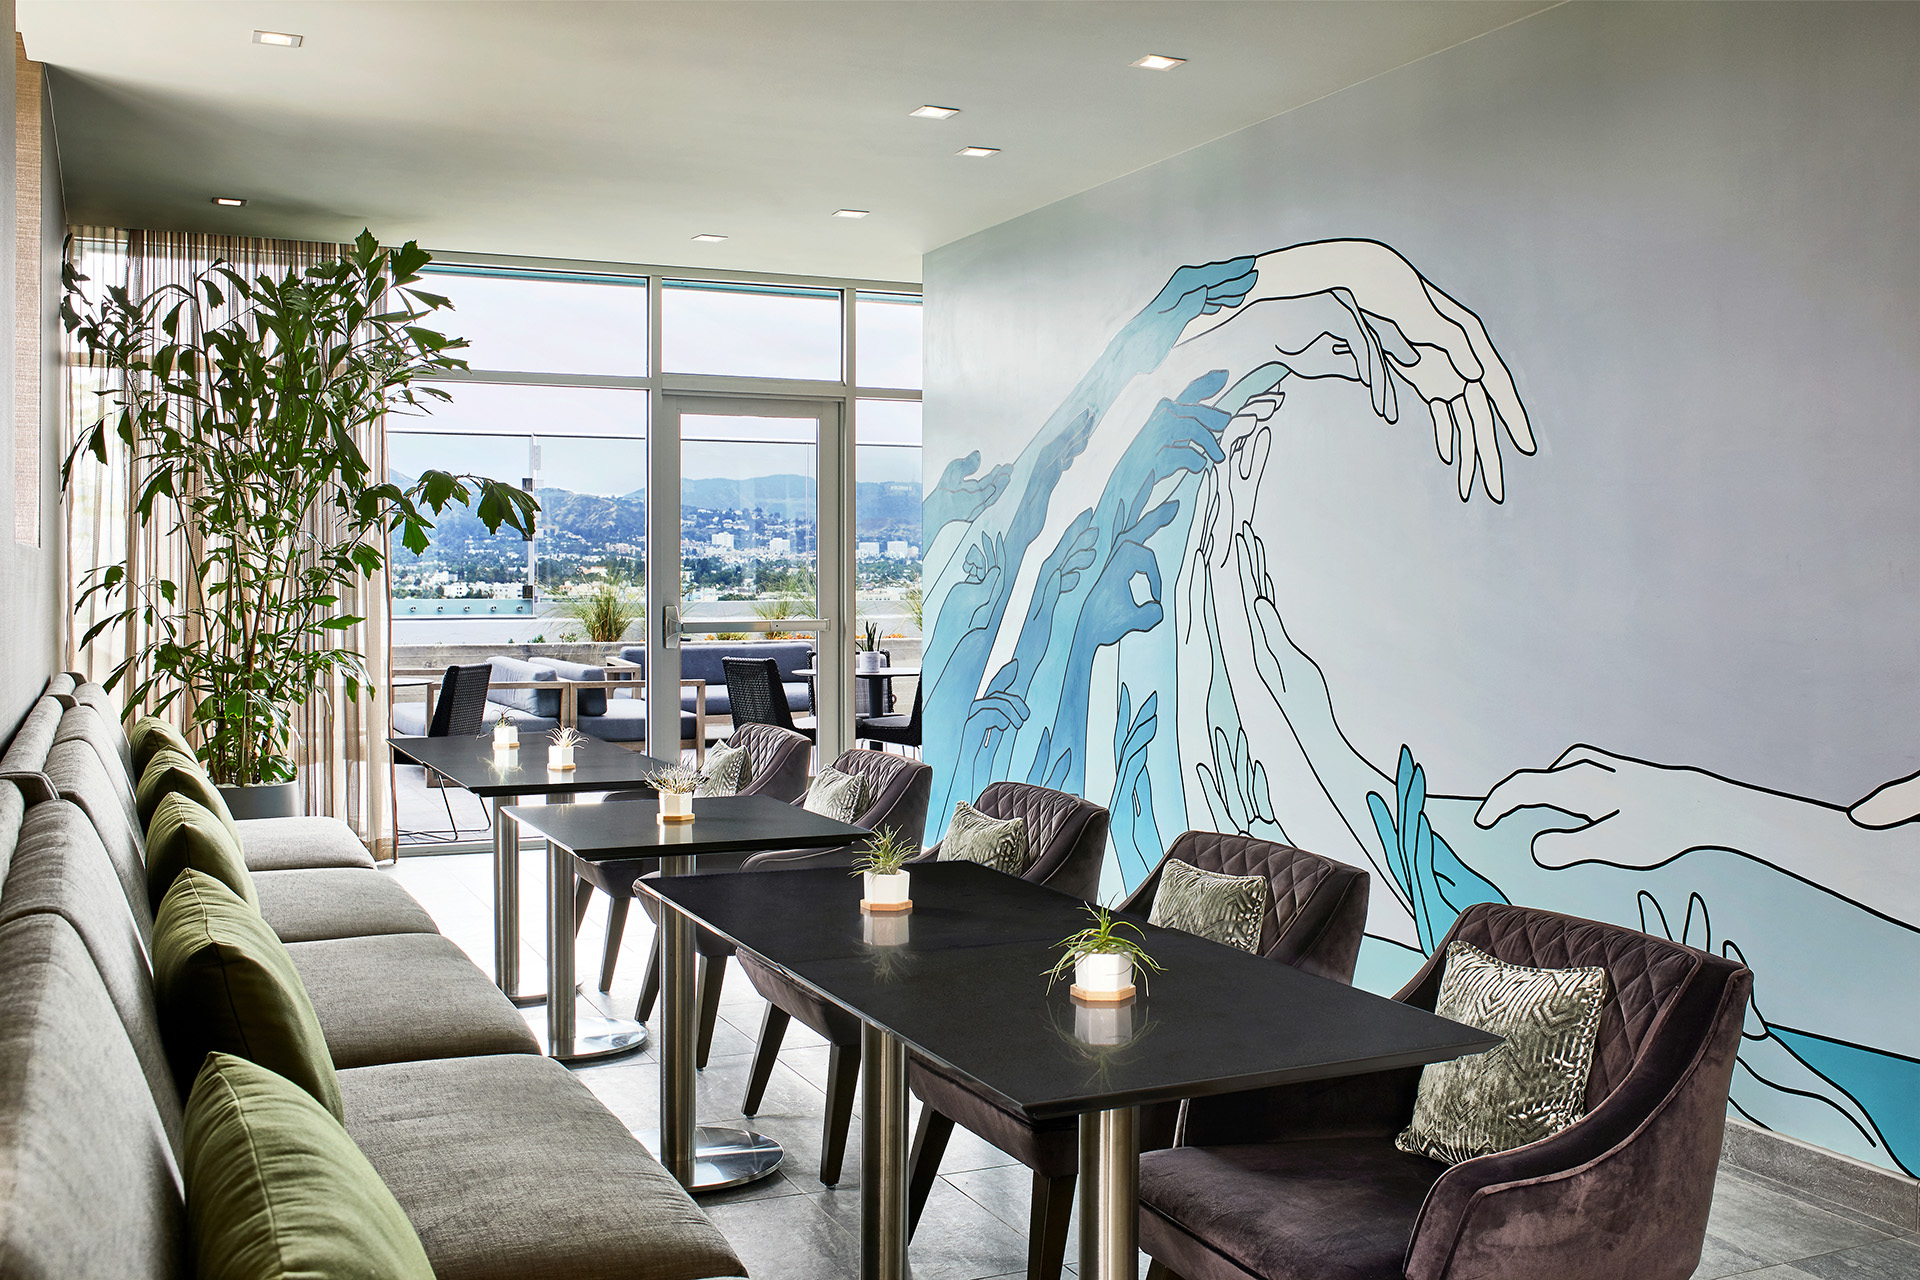 AC by Marriott Beverly Hills Rooftop lounge with sea scape mural